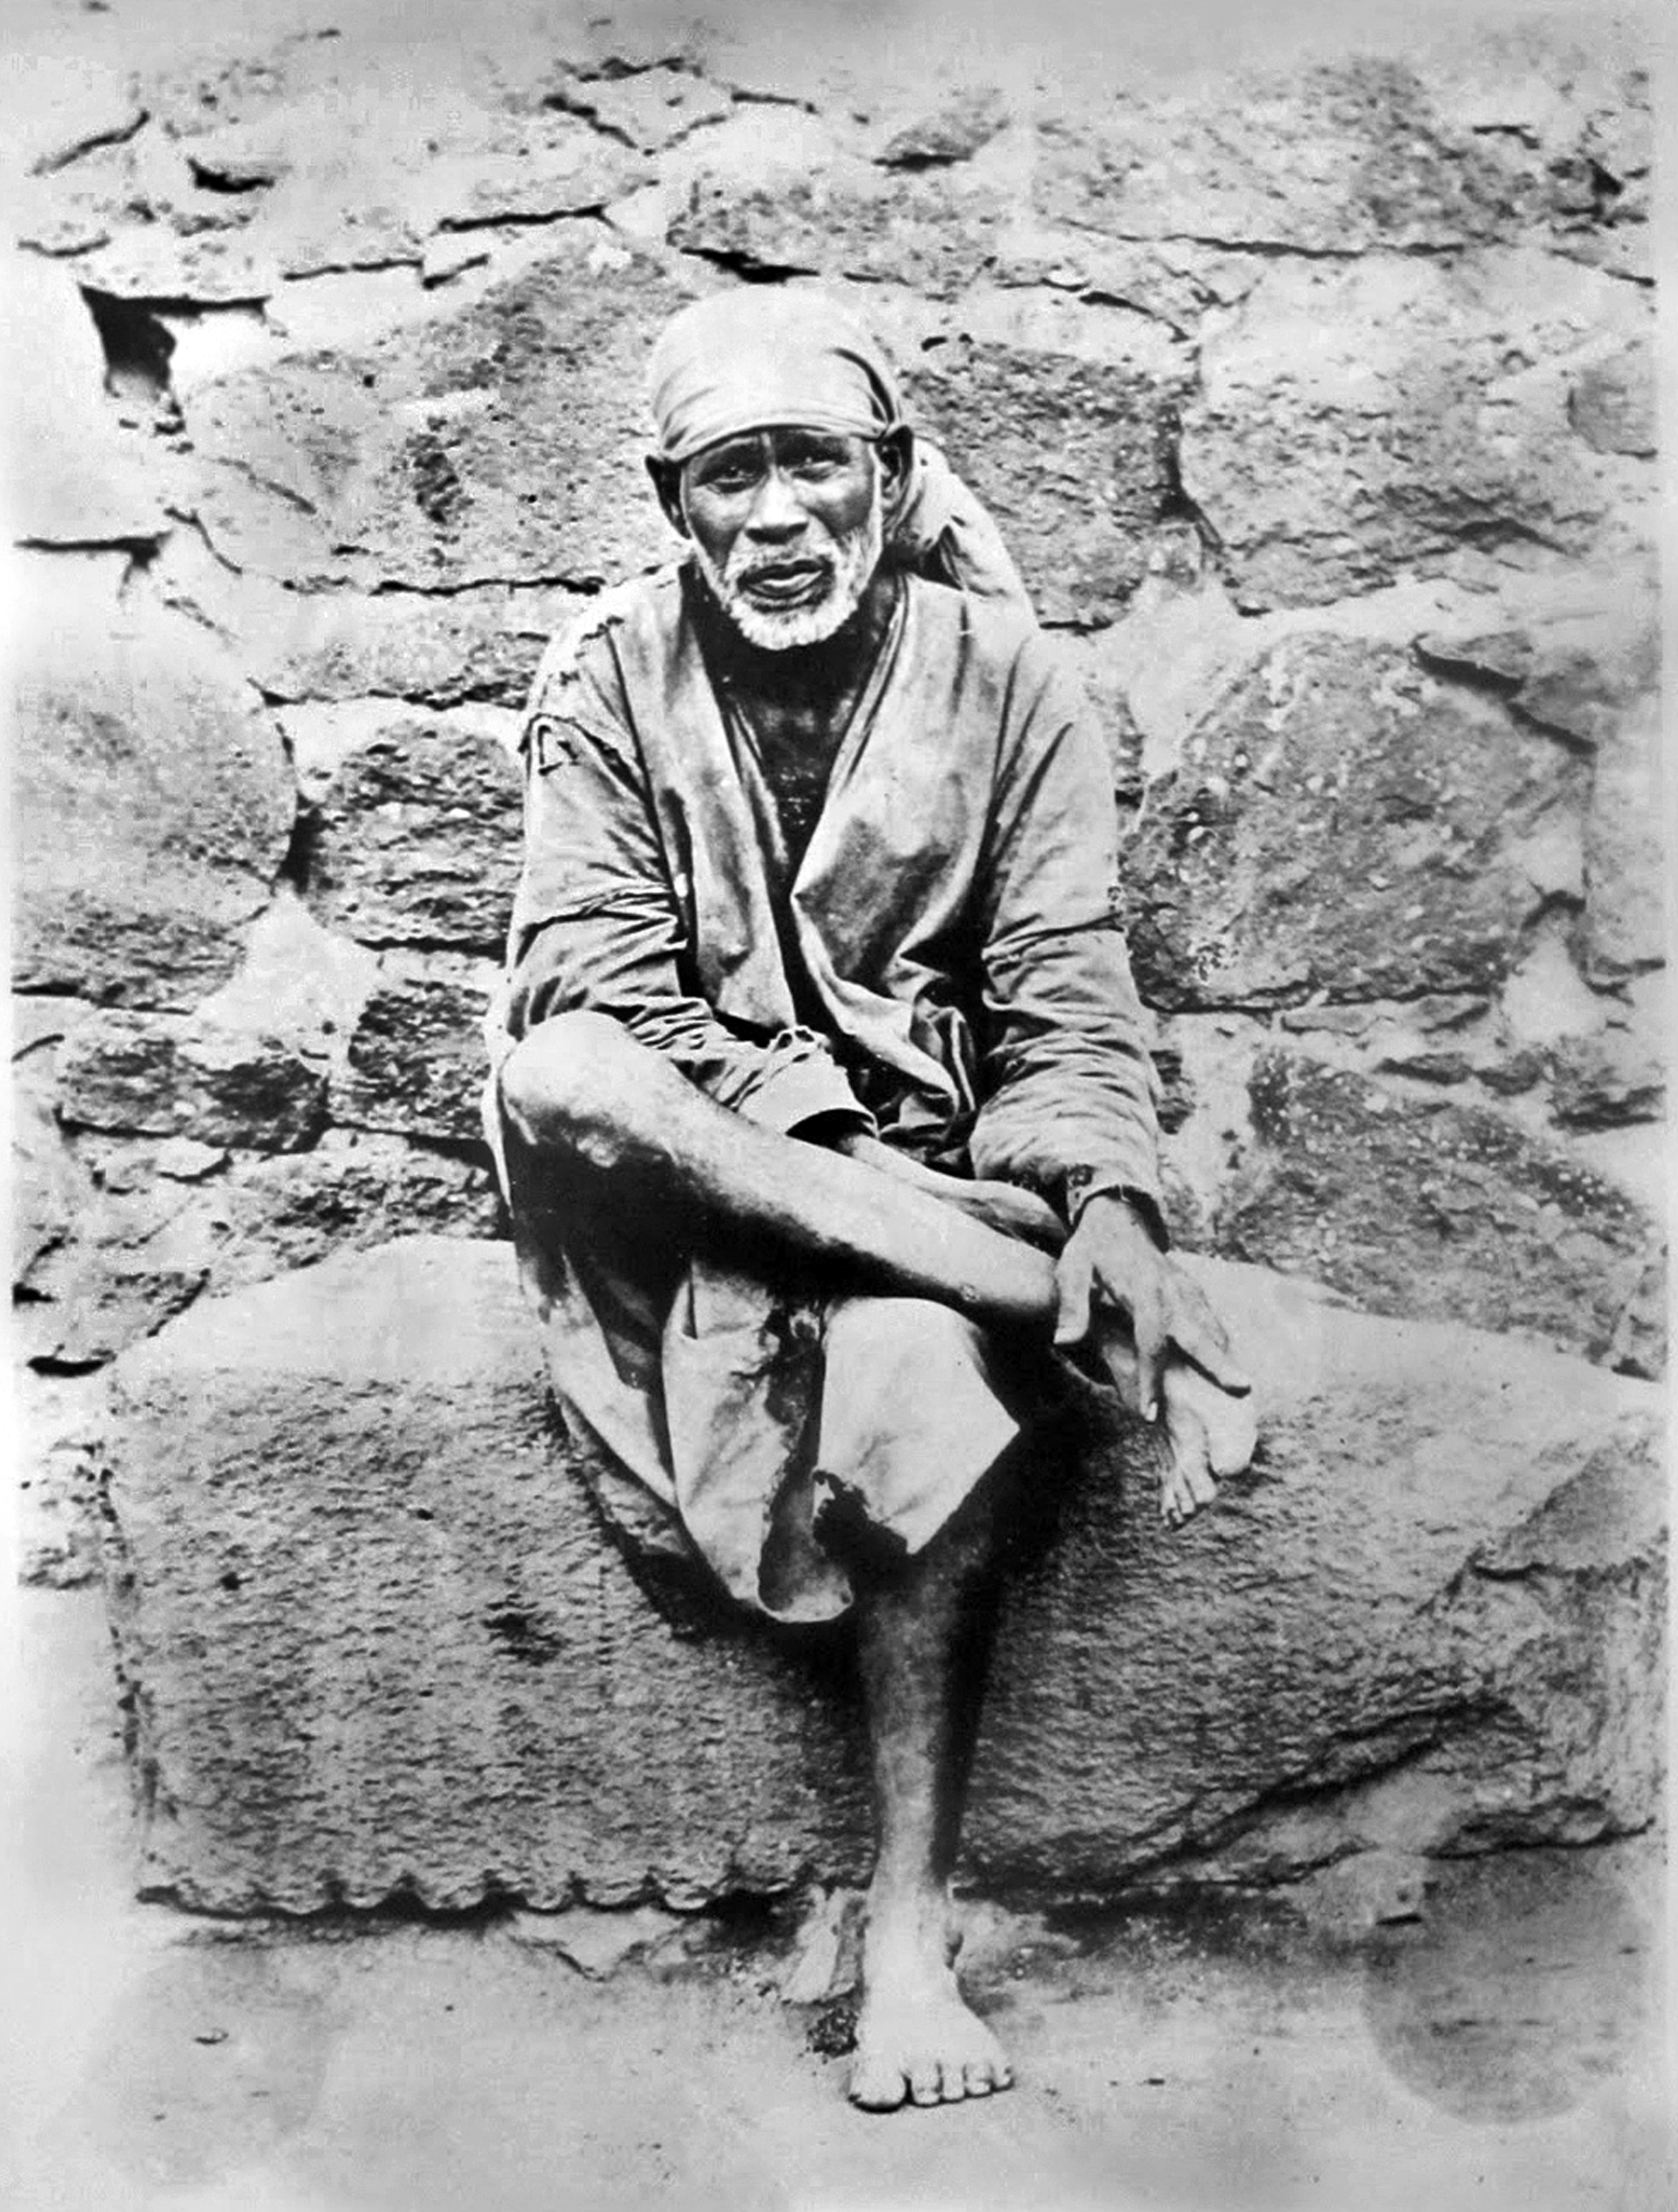 download original real old photos of Shirdi Sai Baba original images Saibaba of Shirdi 1918 original photo high definition high-def photographs ebooks pdf  khaparde Sai Satcharitra.epub Sai Gurucharitra.epub .pdf high resolution wallpapers paintings of Shirdi Sai Baba